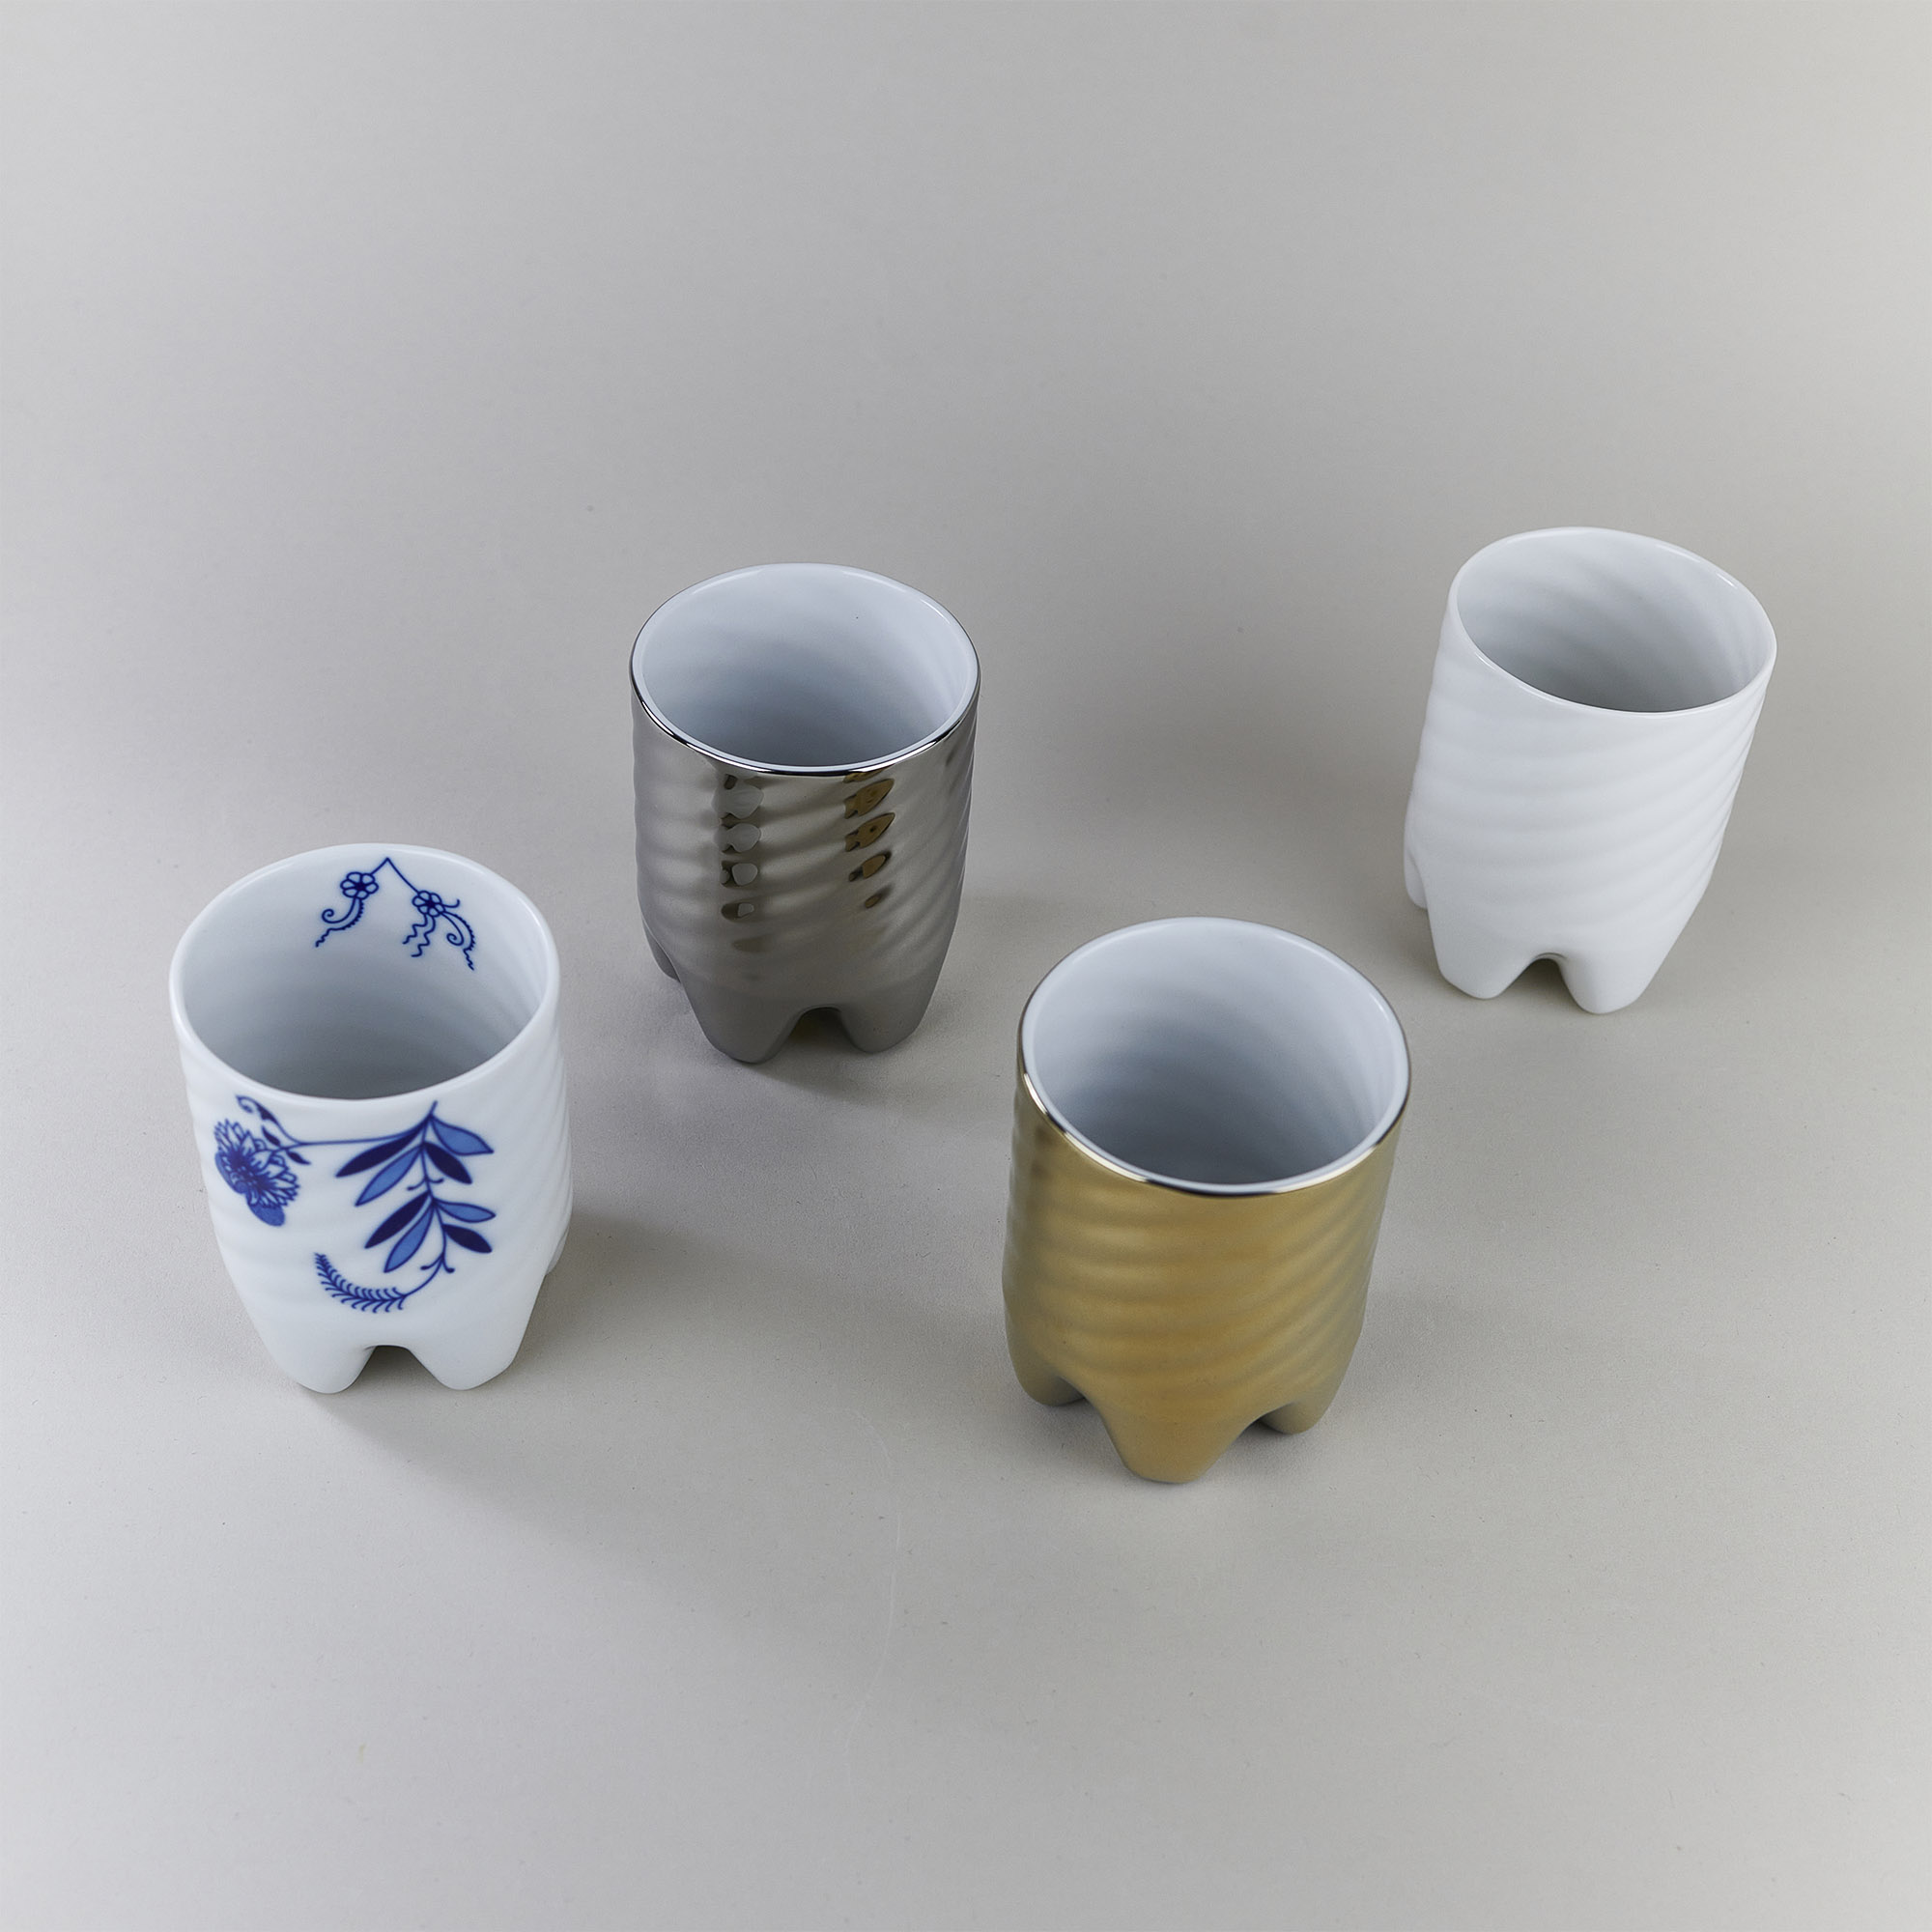 White, gold, silver and onion pattern porcelain cups by Qubus design studio